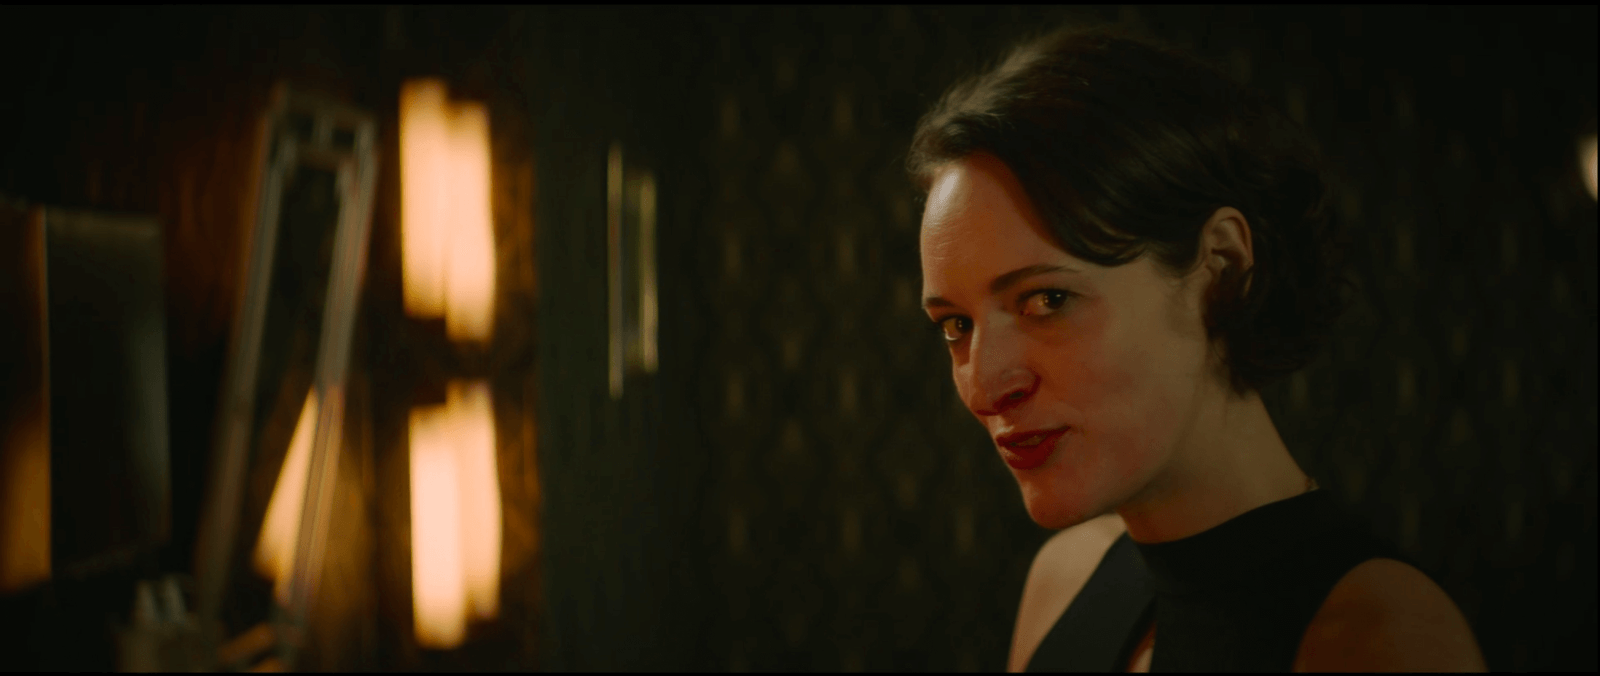 Fleabag close up of a woman with a bloody nose in a fancy bathroom